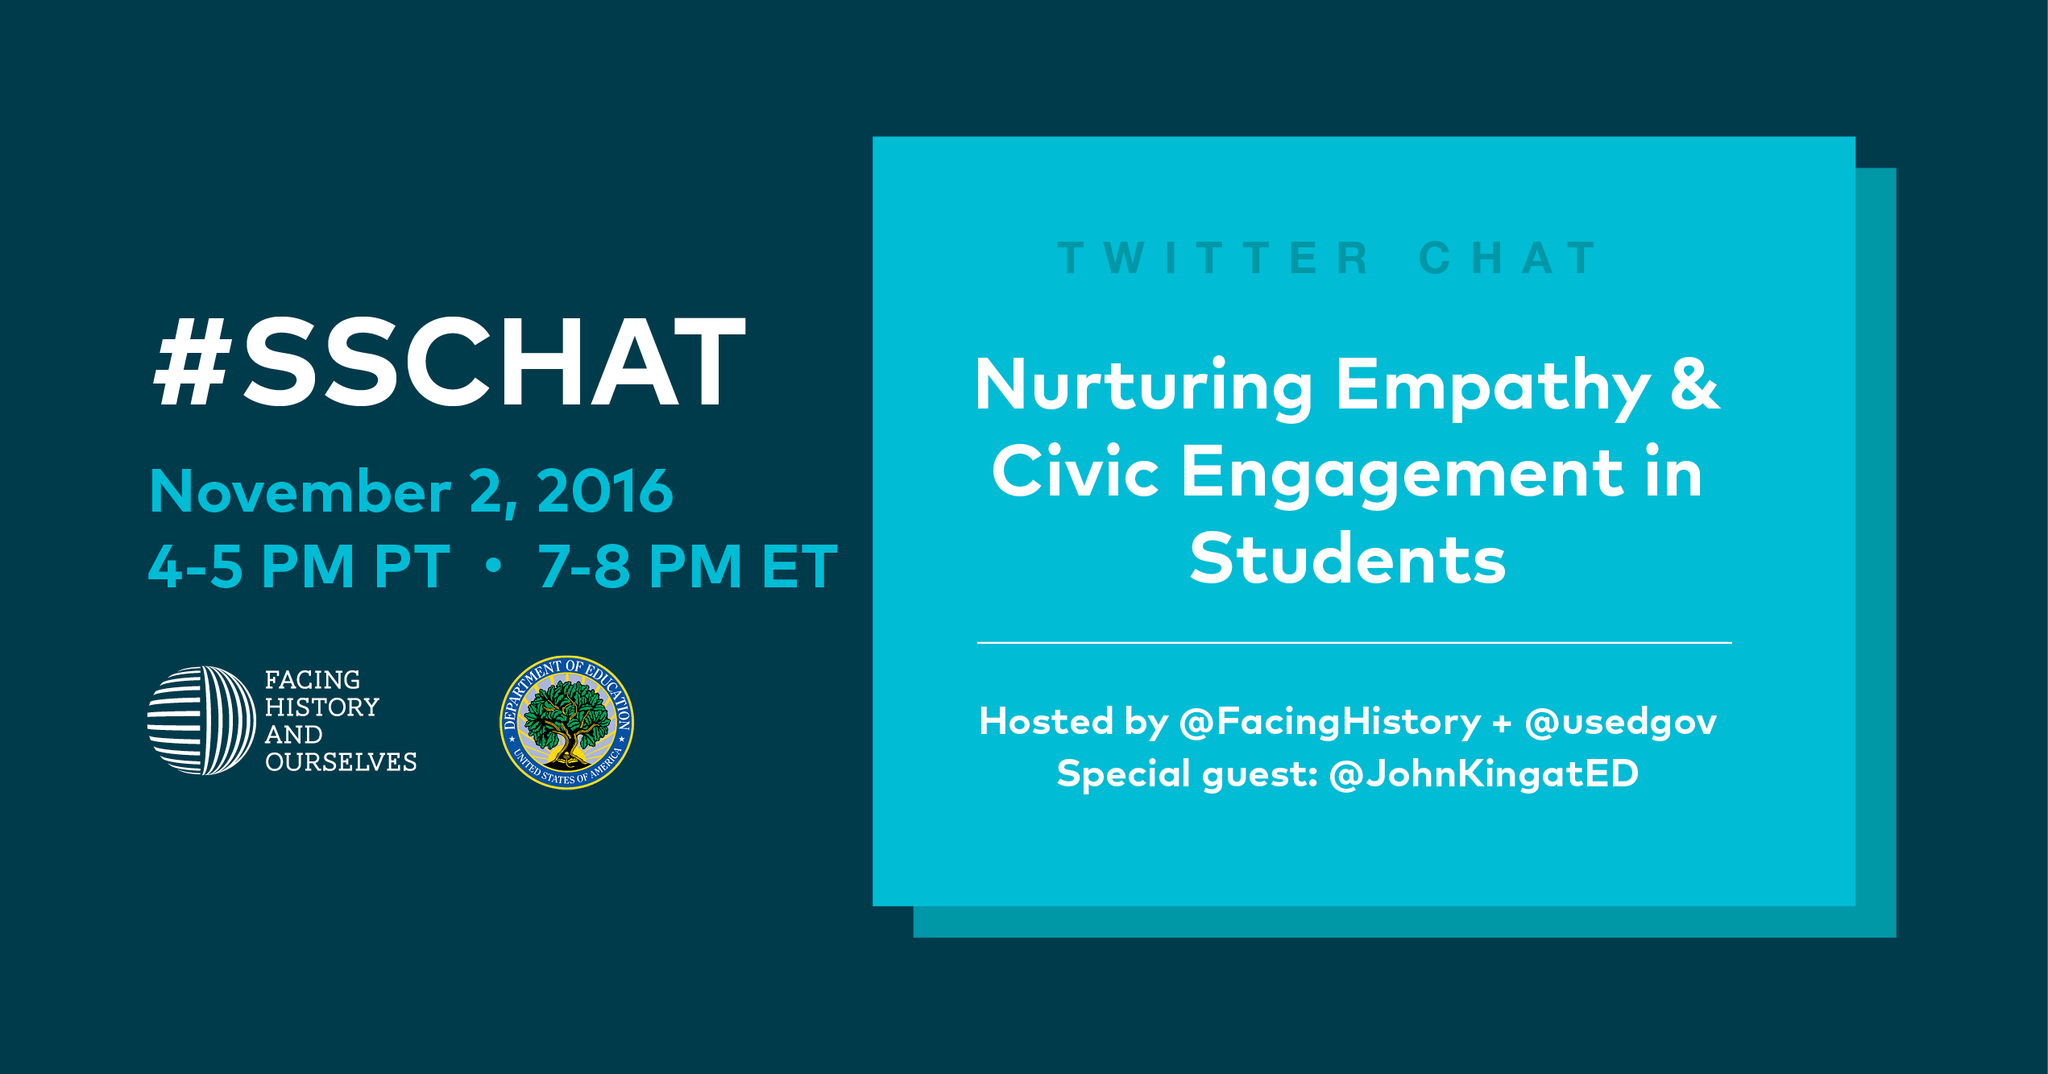 We're chatting now! Join us & @JohnKingatED for a special #sschat! https://t.co/Em9szSNMwu